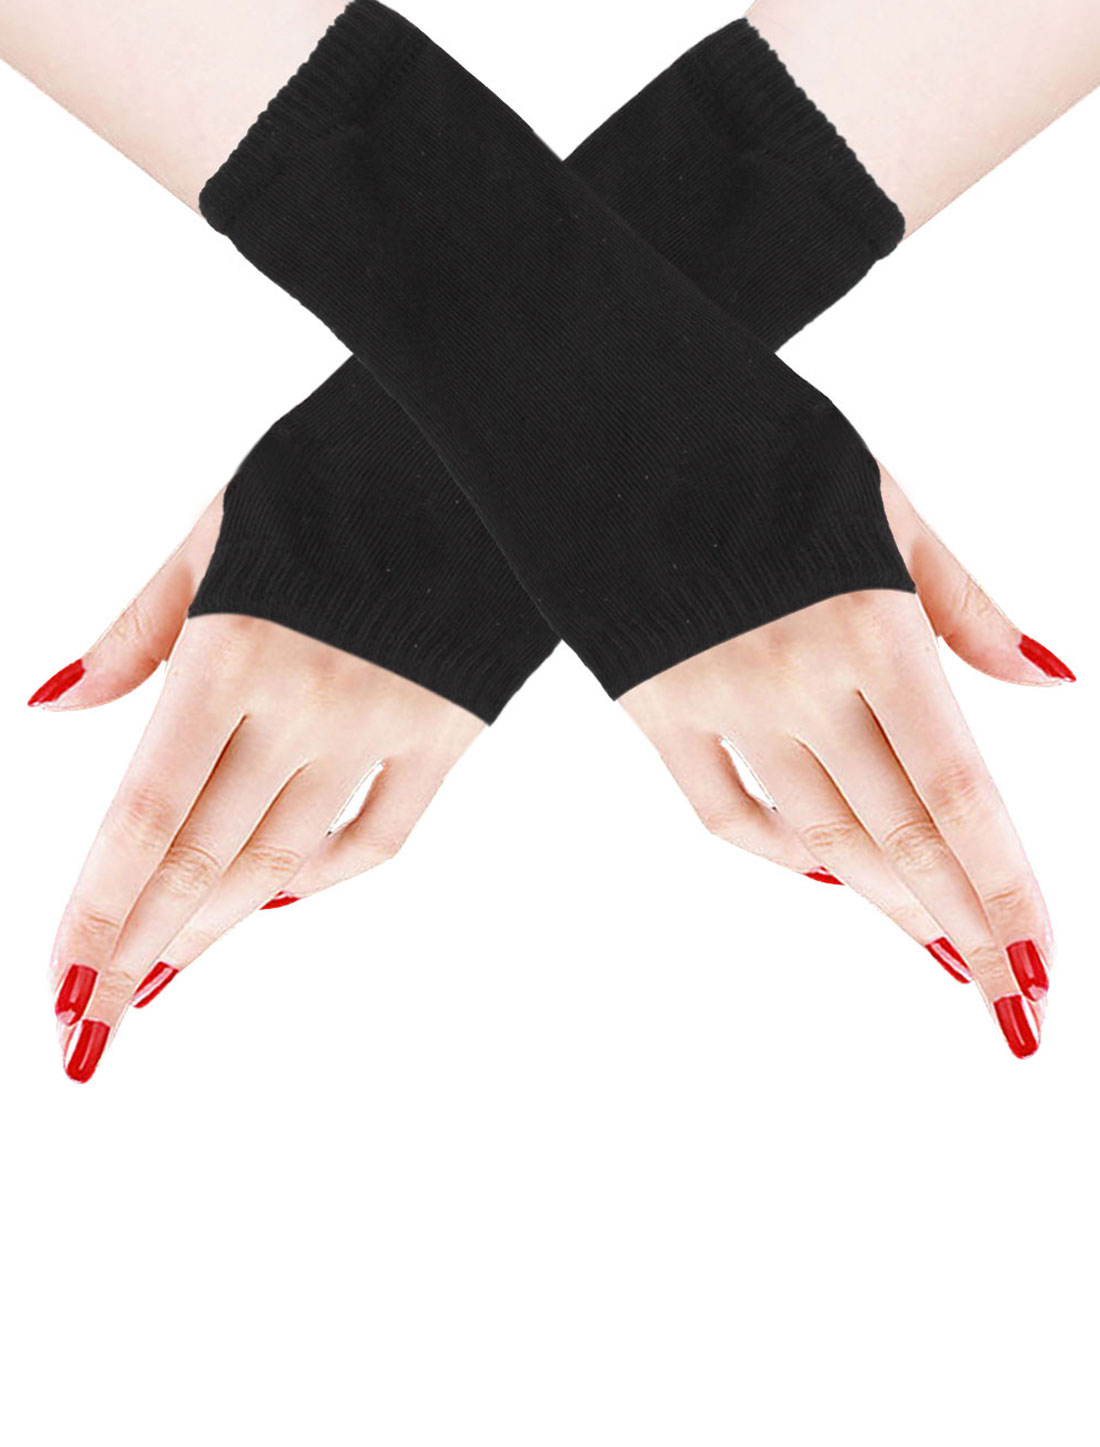 Pair Black Knit Fingerless Short Gloves for Ladies